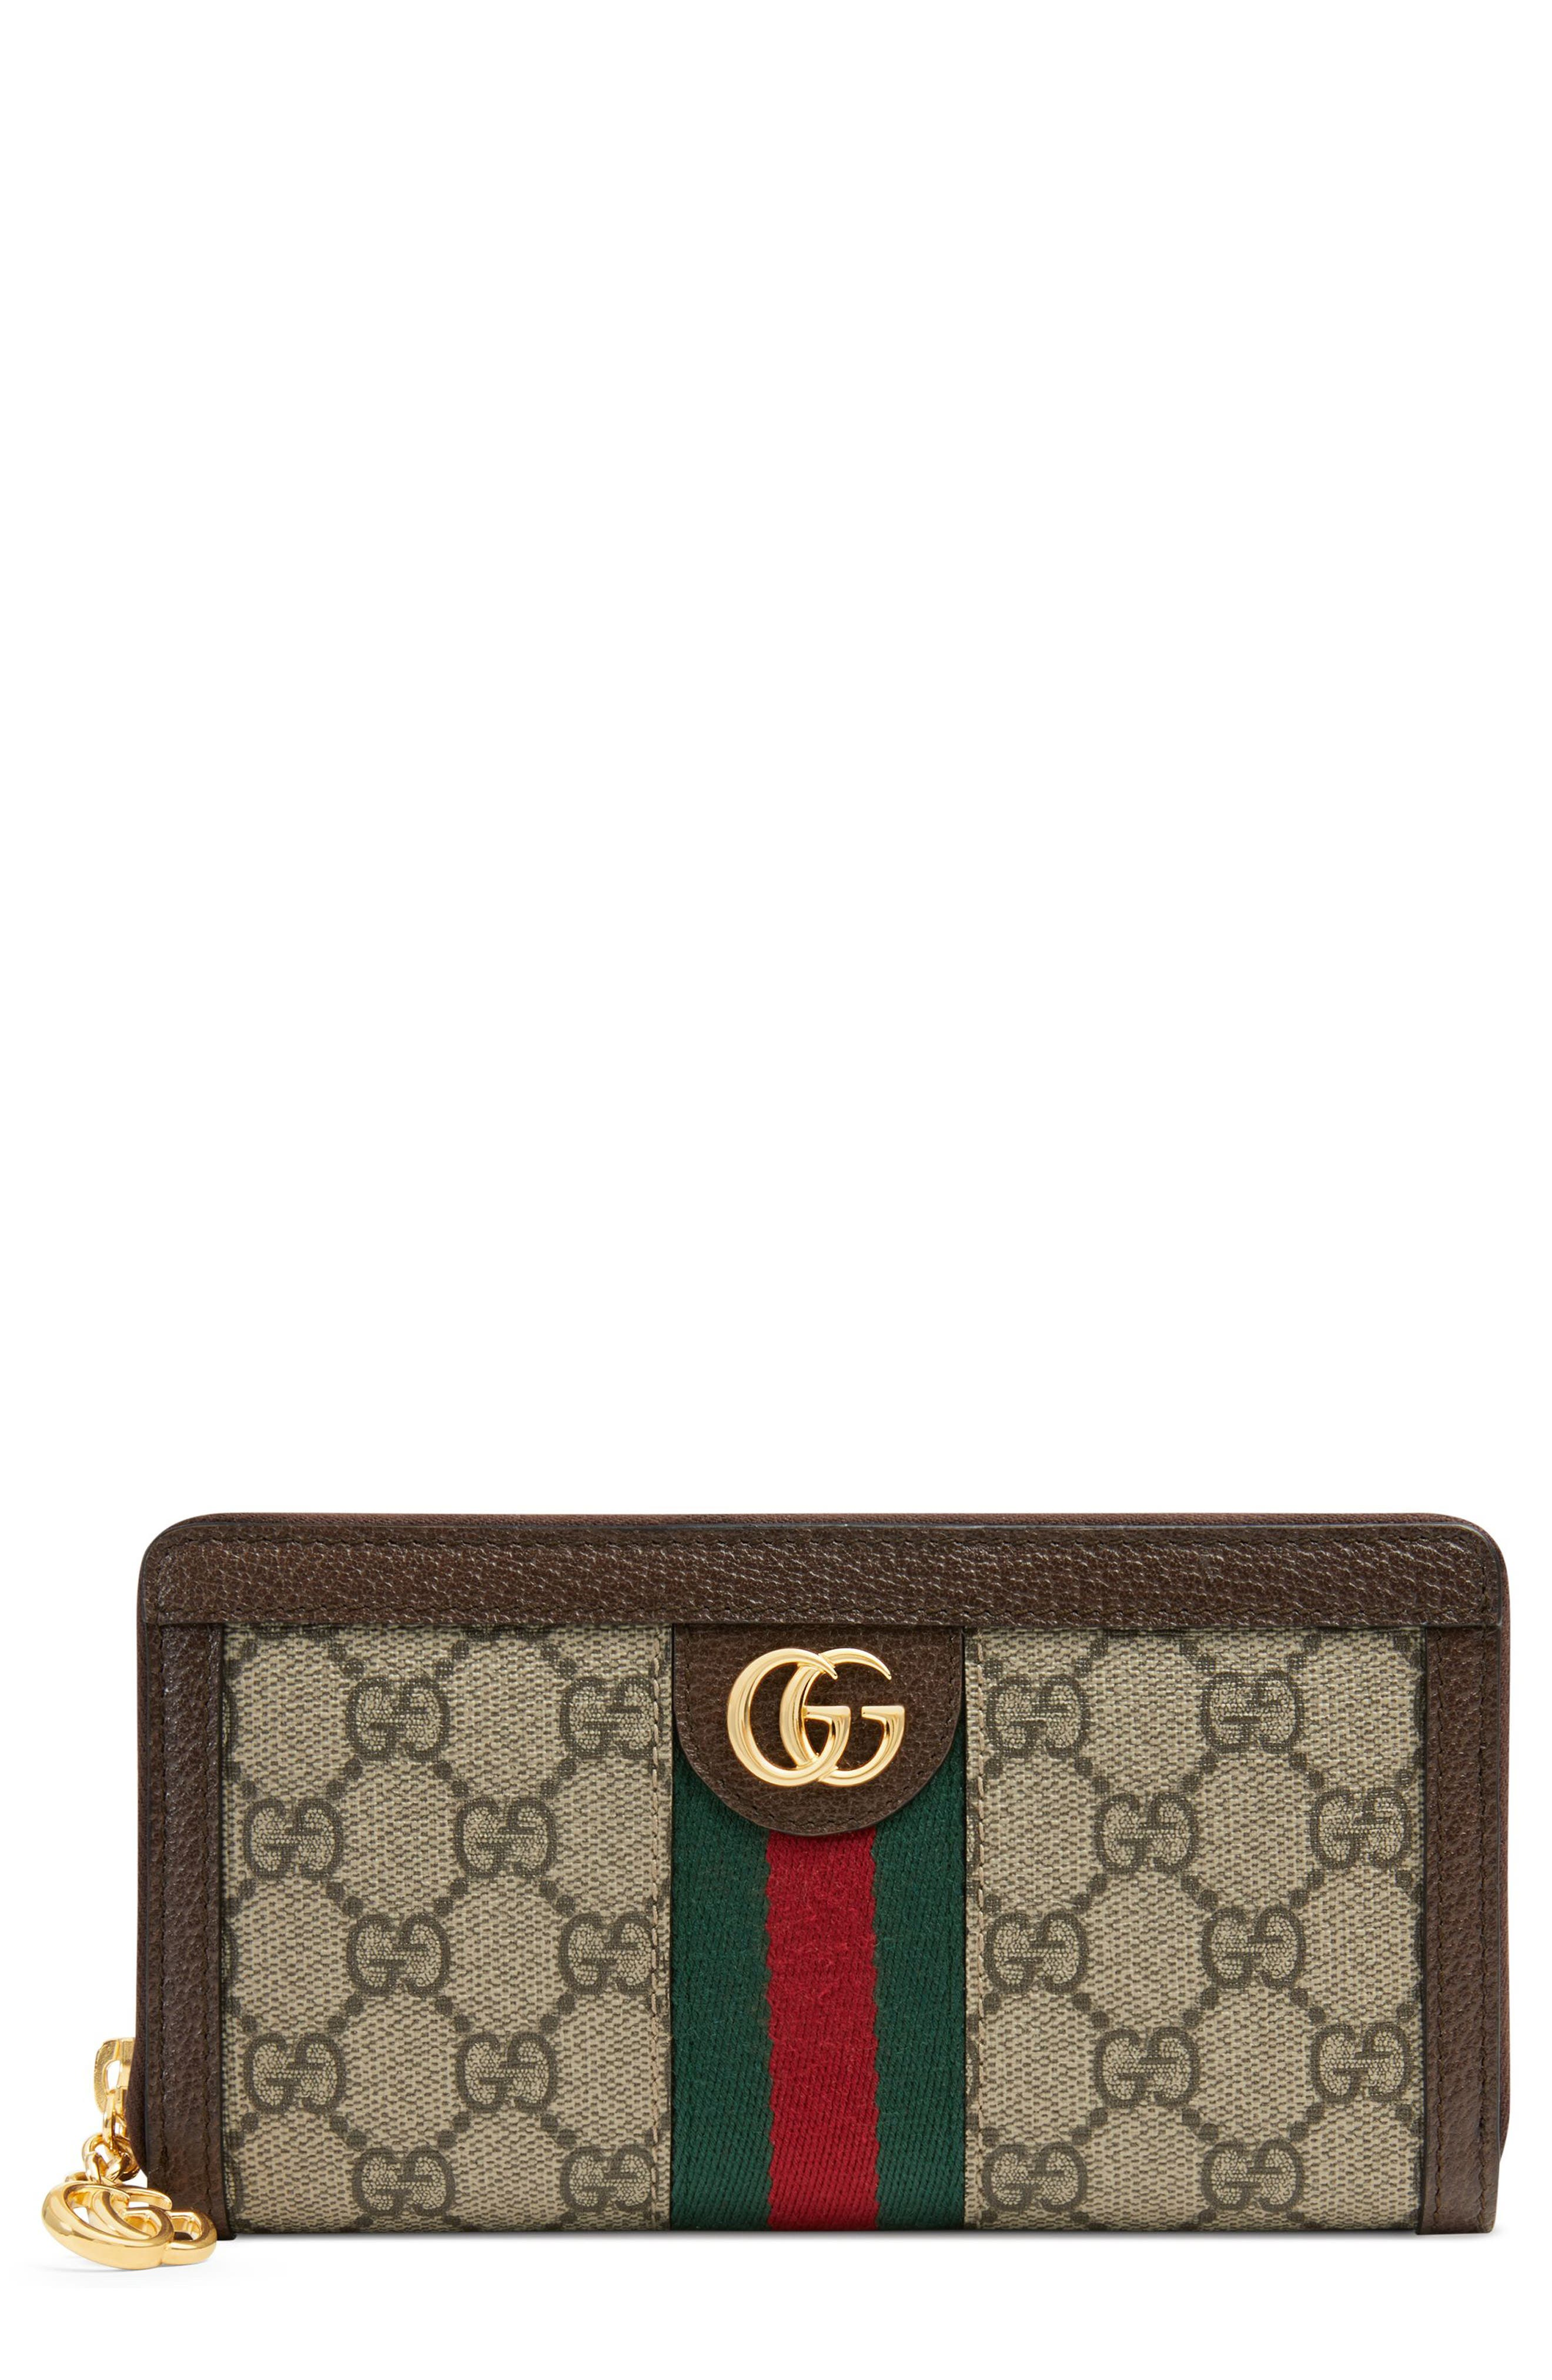 Ophidia GG Supreme Zip-Around Wallet,                             Main thumbnail 1, color,                             BEIGE EBONY/ ACERO/ VERT RED